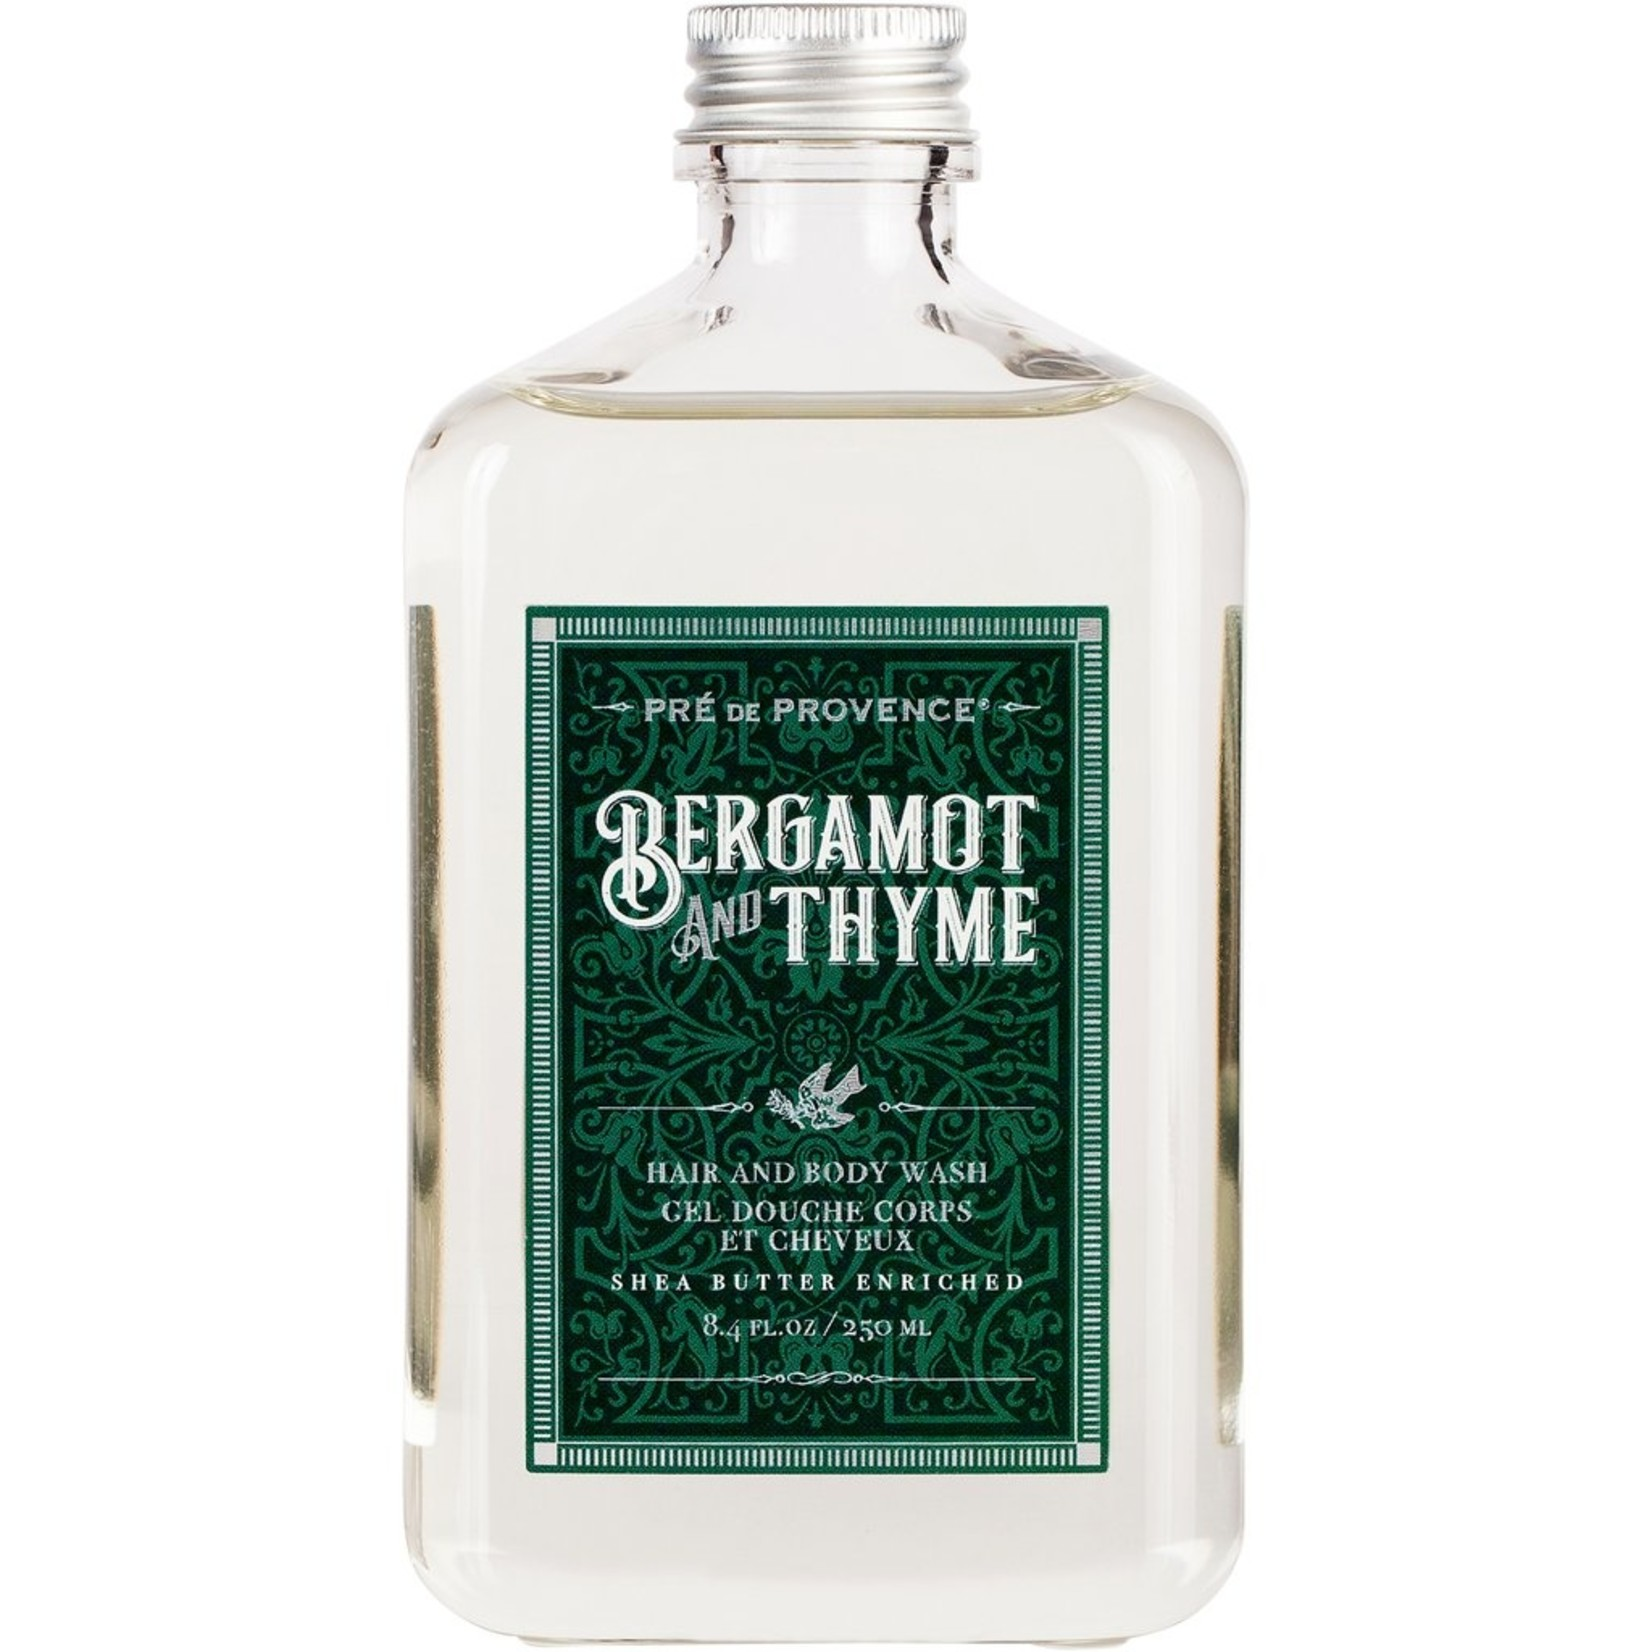 Pre de Provence Bergamot and Thyme Hair and Body Wash